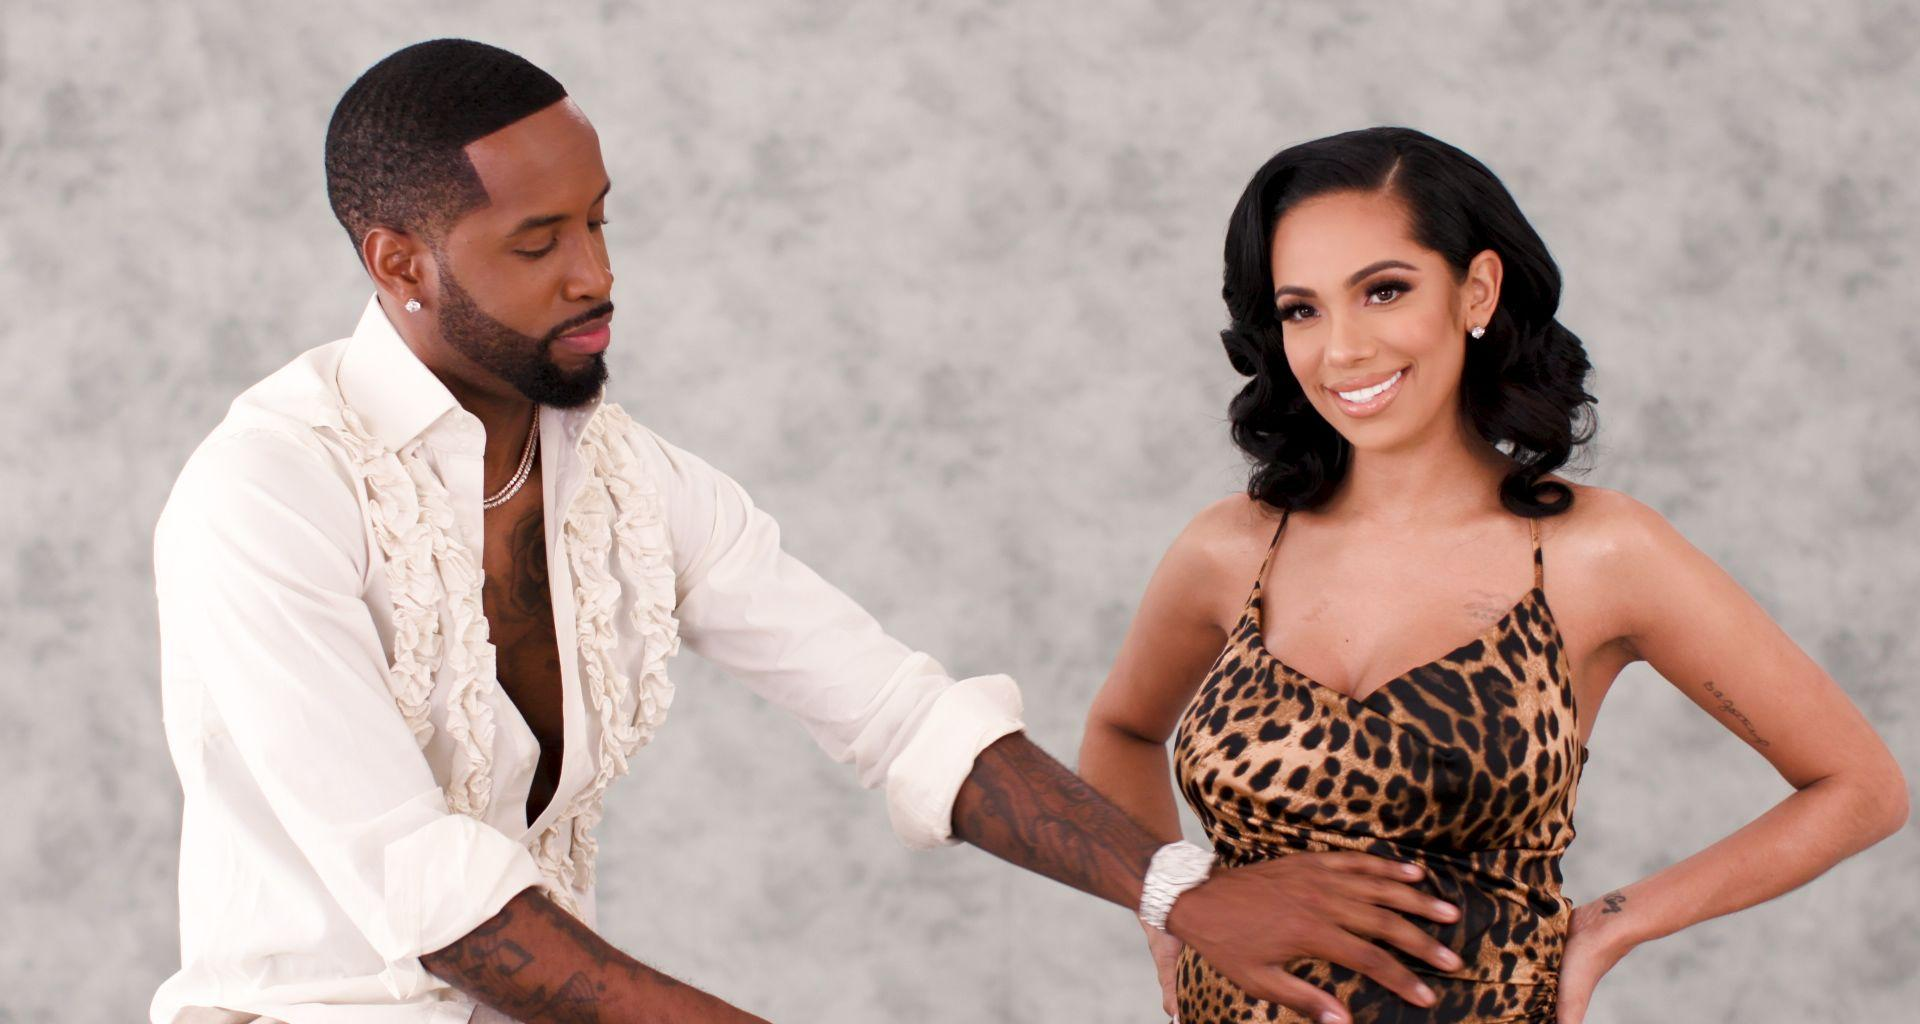 Erica Mena And Safaree's Gang Was Reportedly Involved In A Physical Altercation; Nicki Minaj's Name Was Brought Up - Erica Slams The Claims